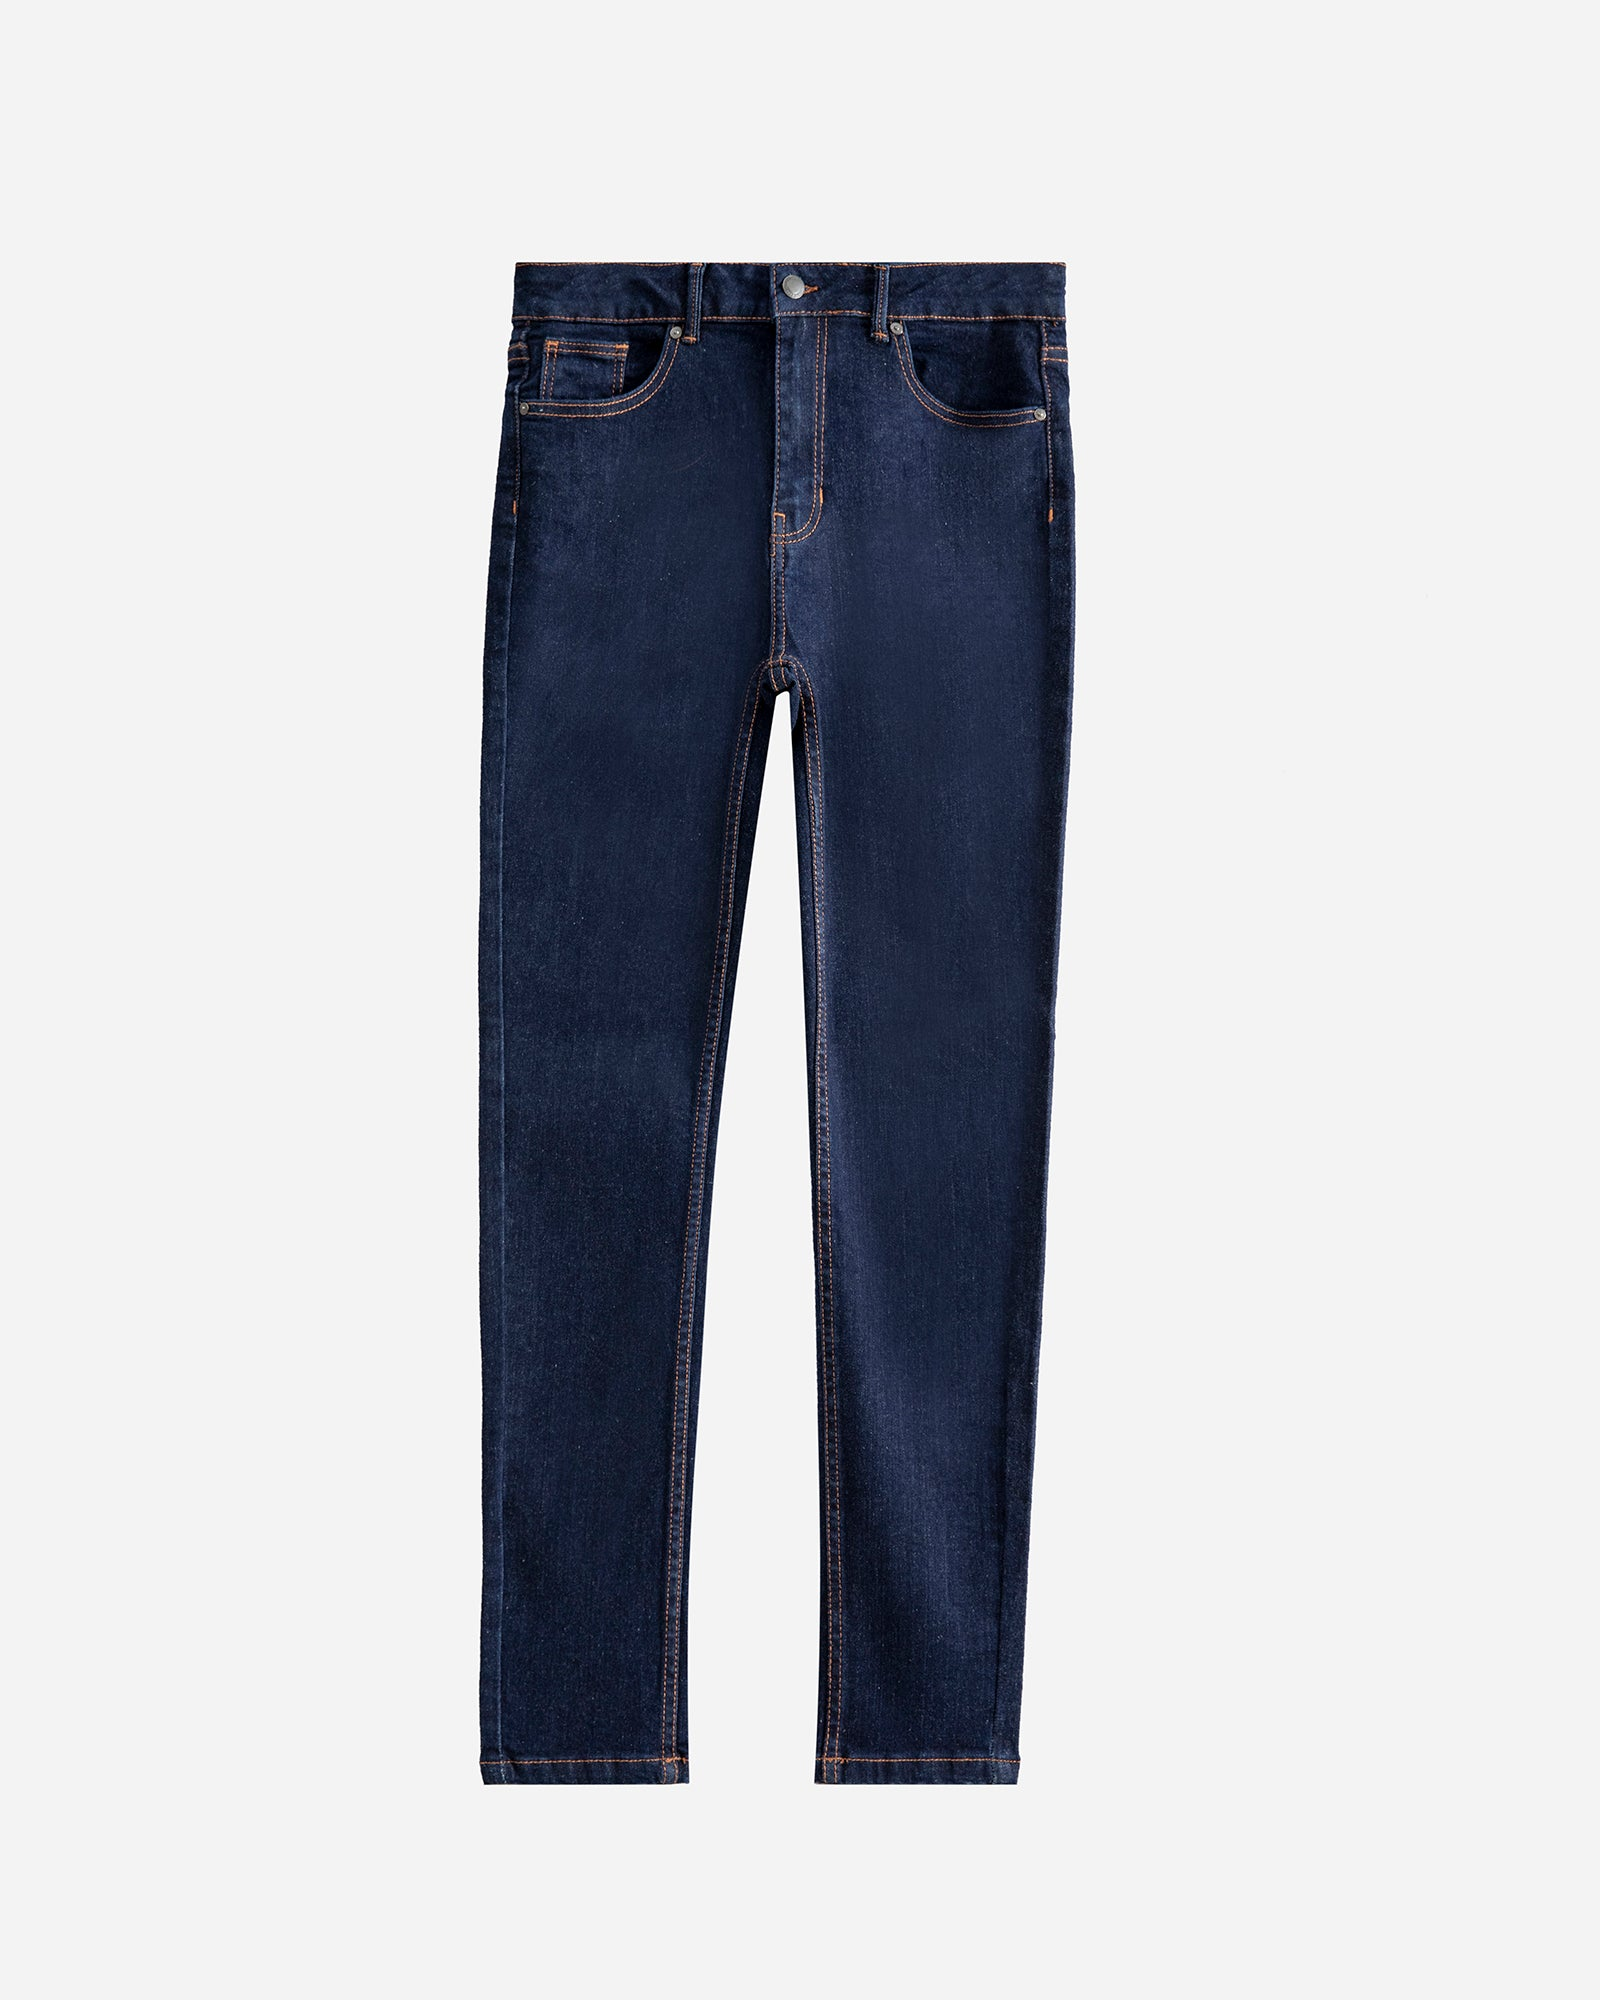 Regular Rise Skinny Fit Jeans